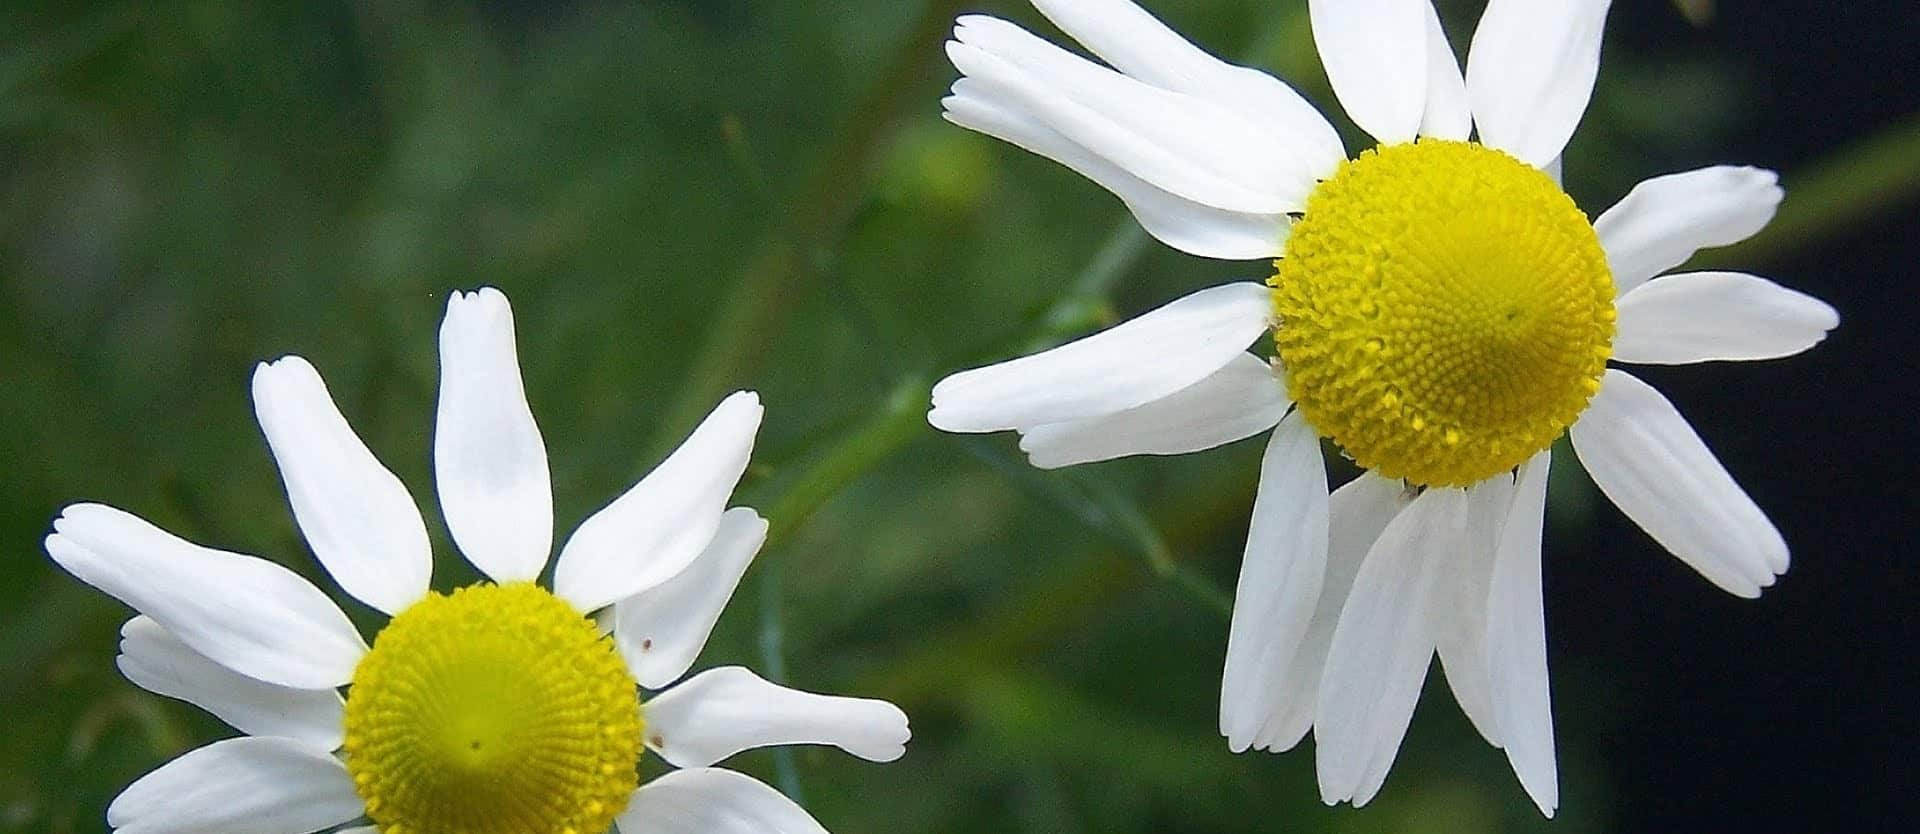 Chamomile Tea May Not Be Safe During Pregnancy Nutritionfactsorg